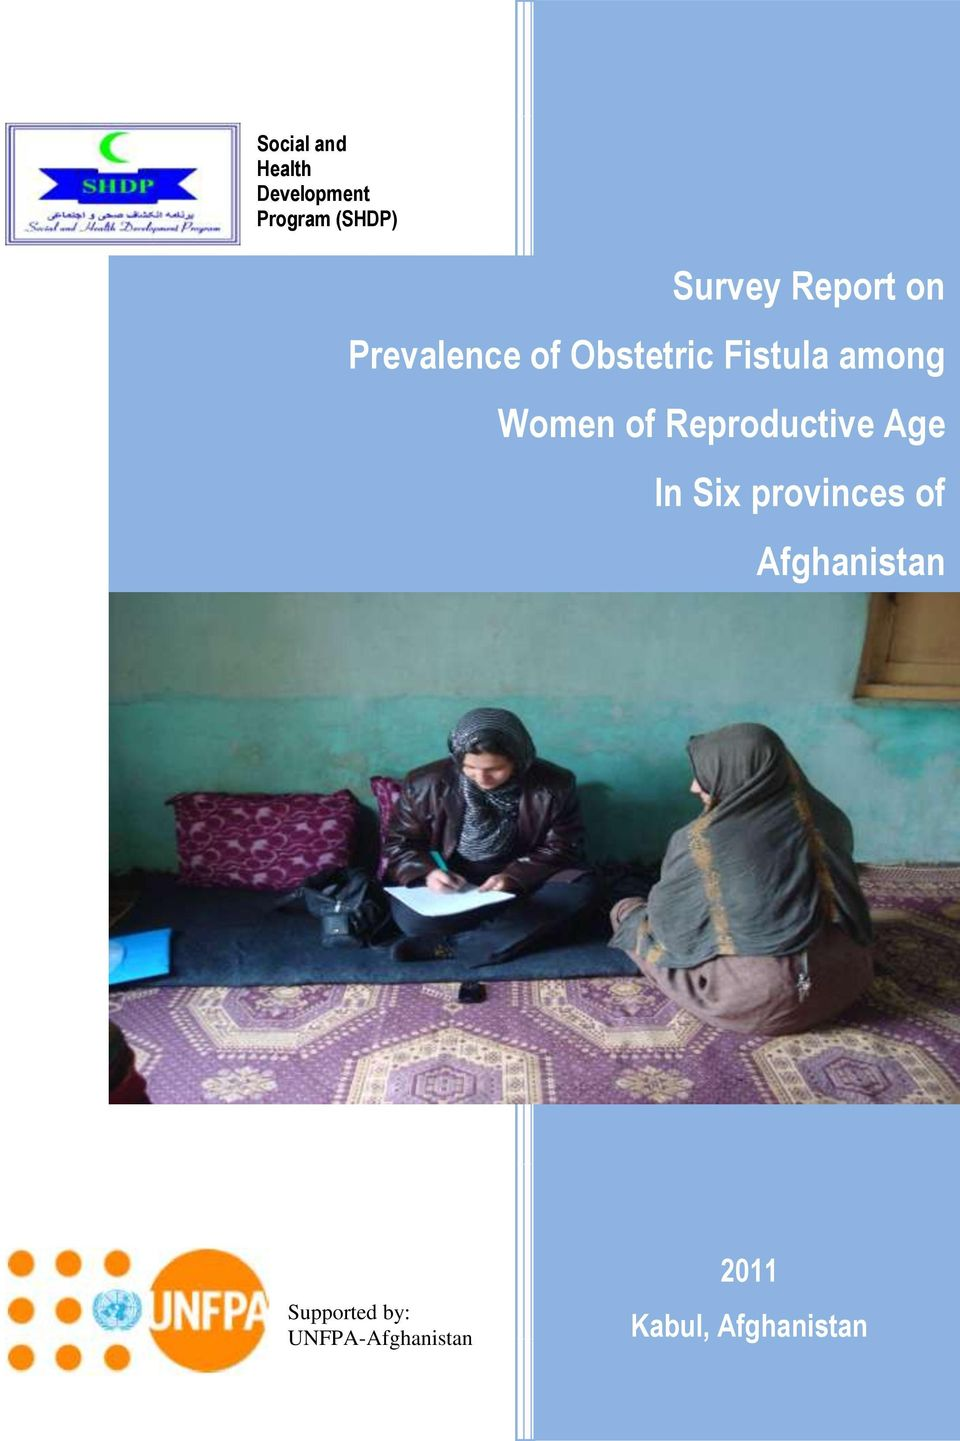 of Reproductive Age In Six provinces of Afghanistan.